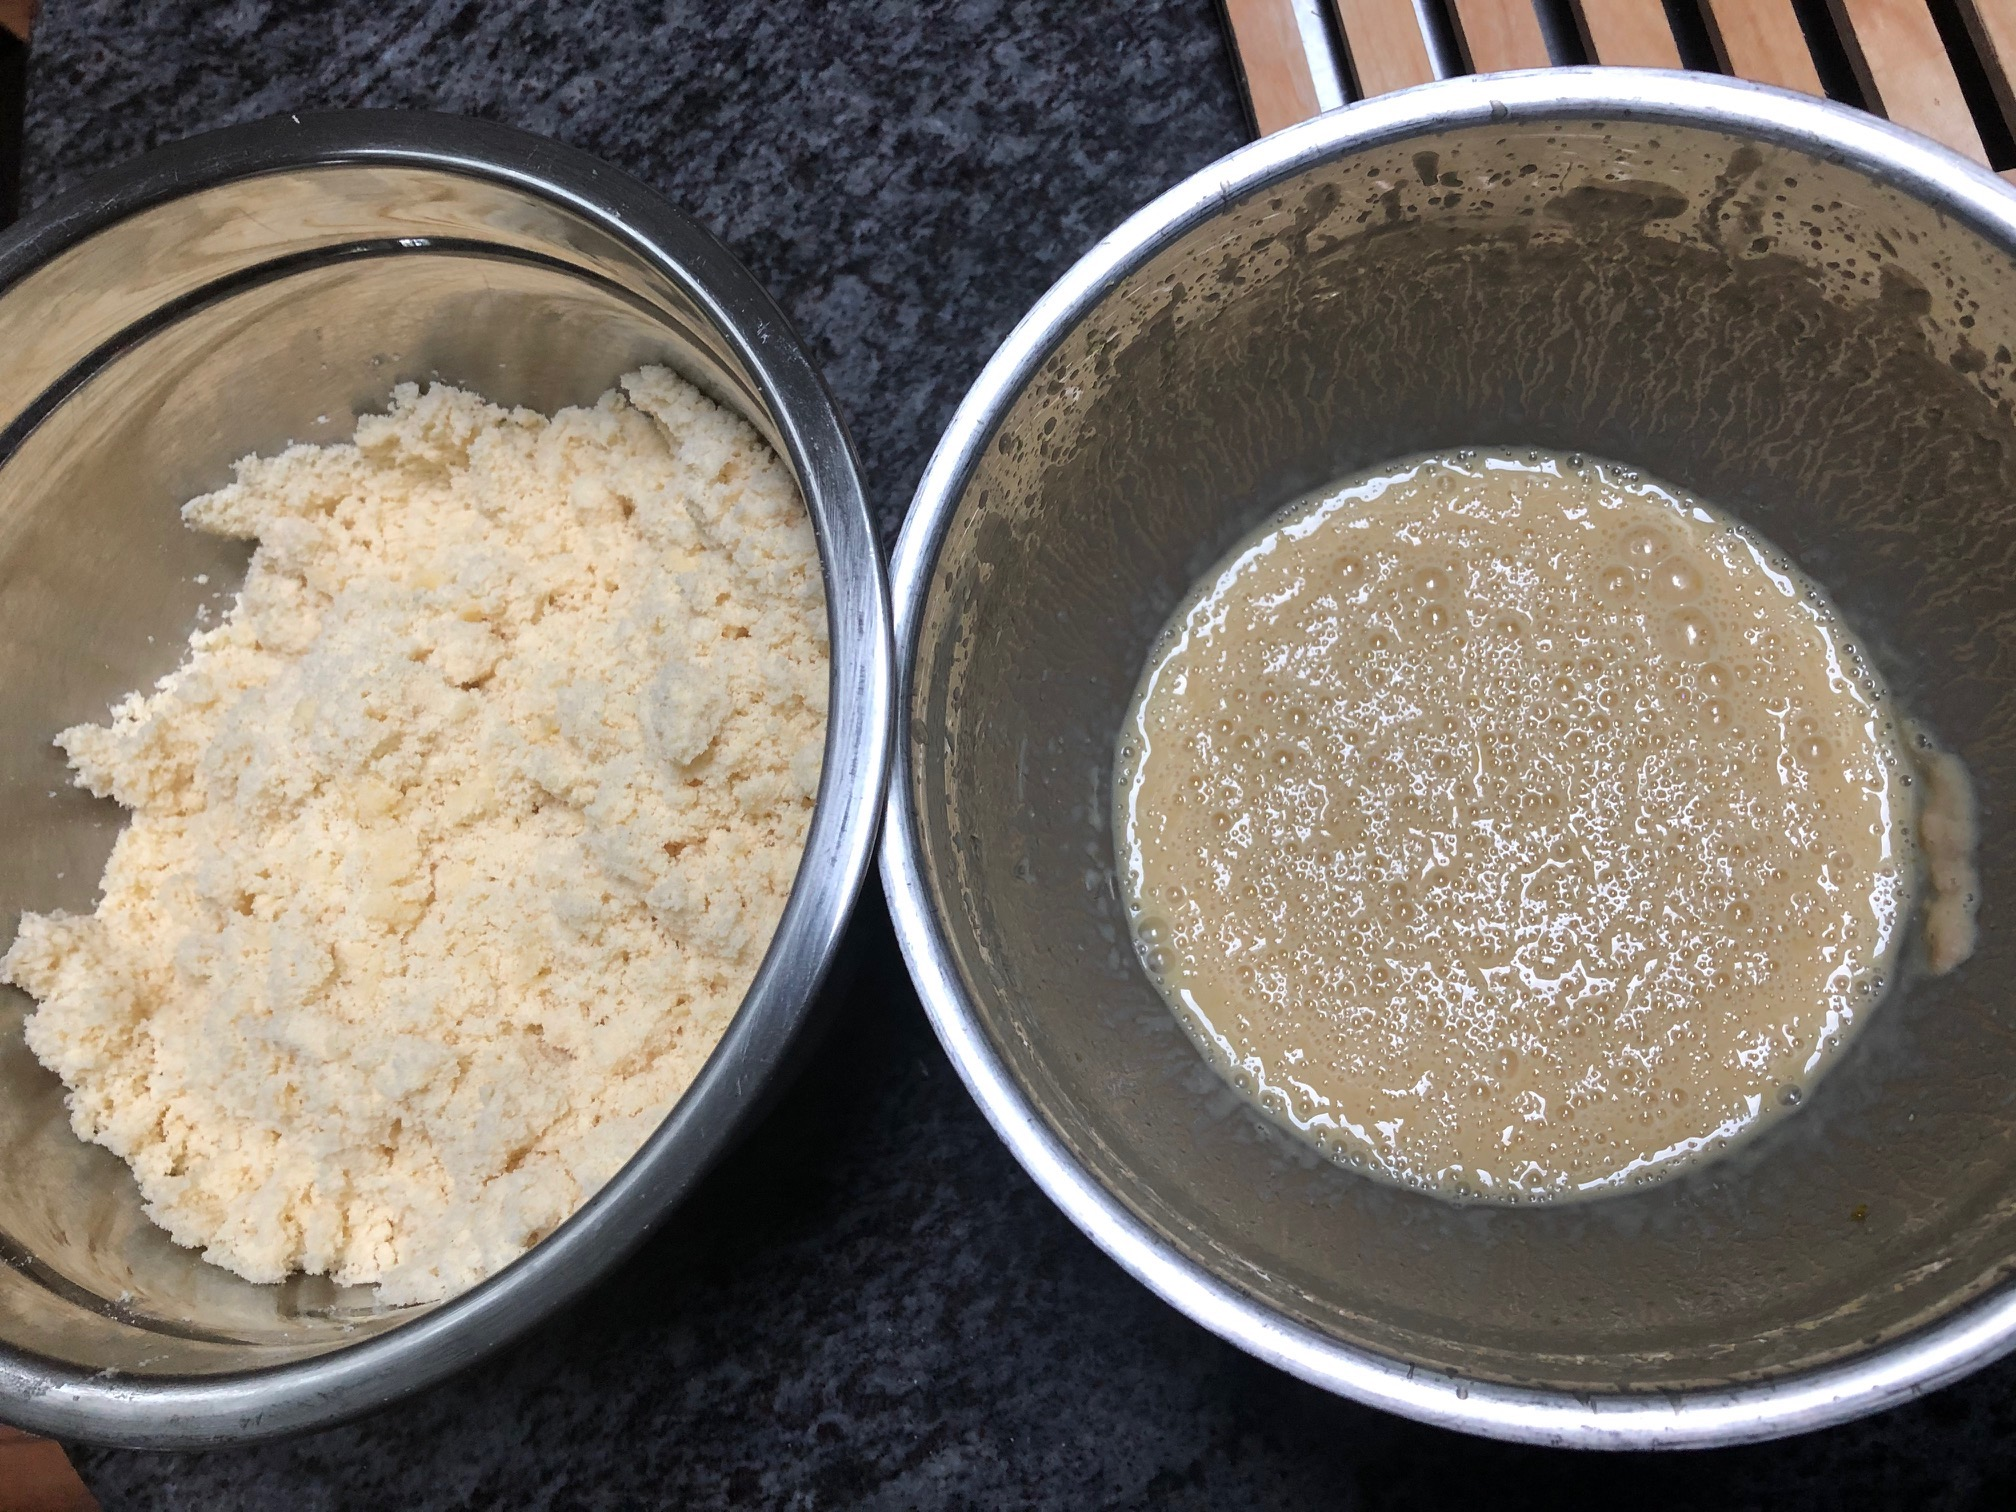 dry and wet ingredients